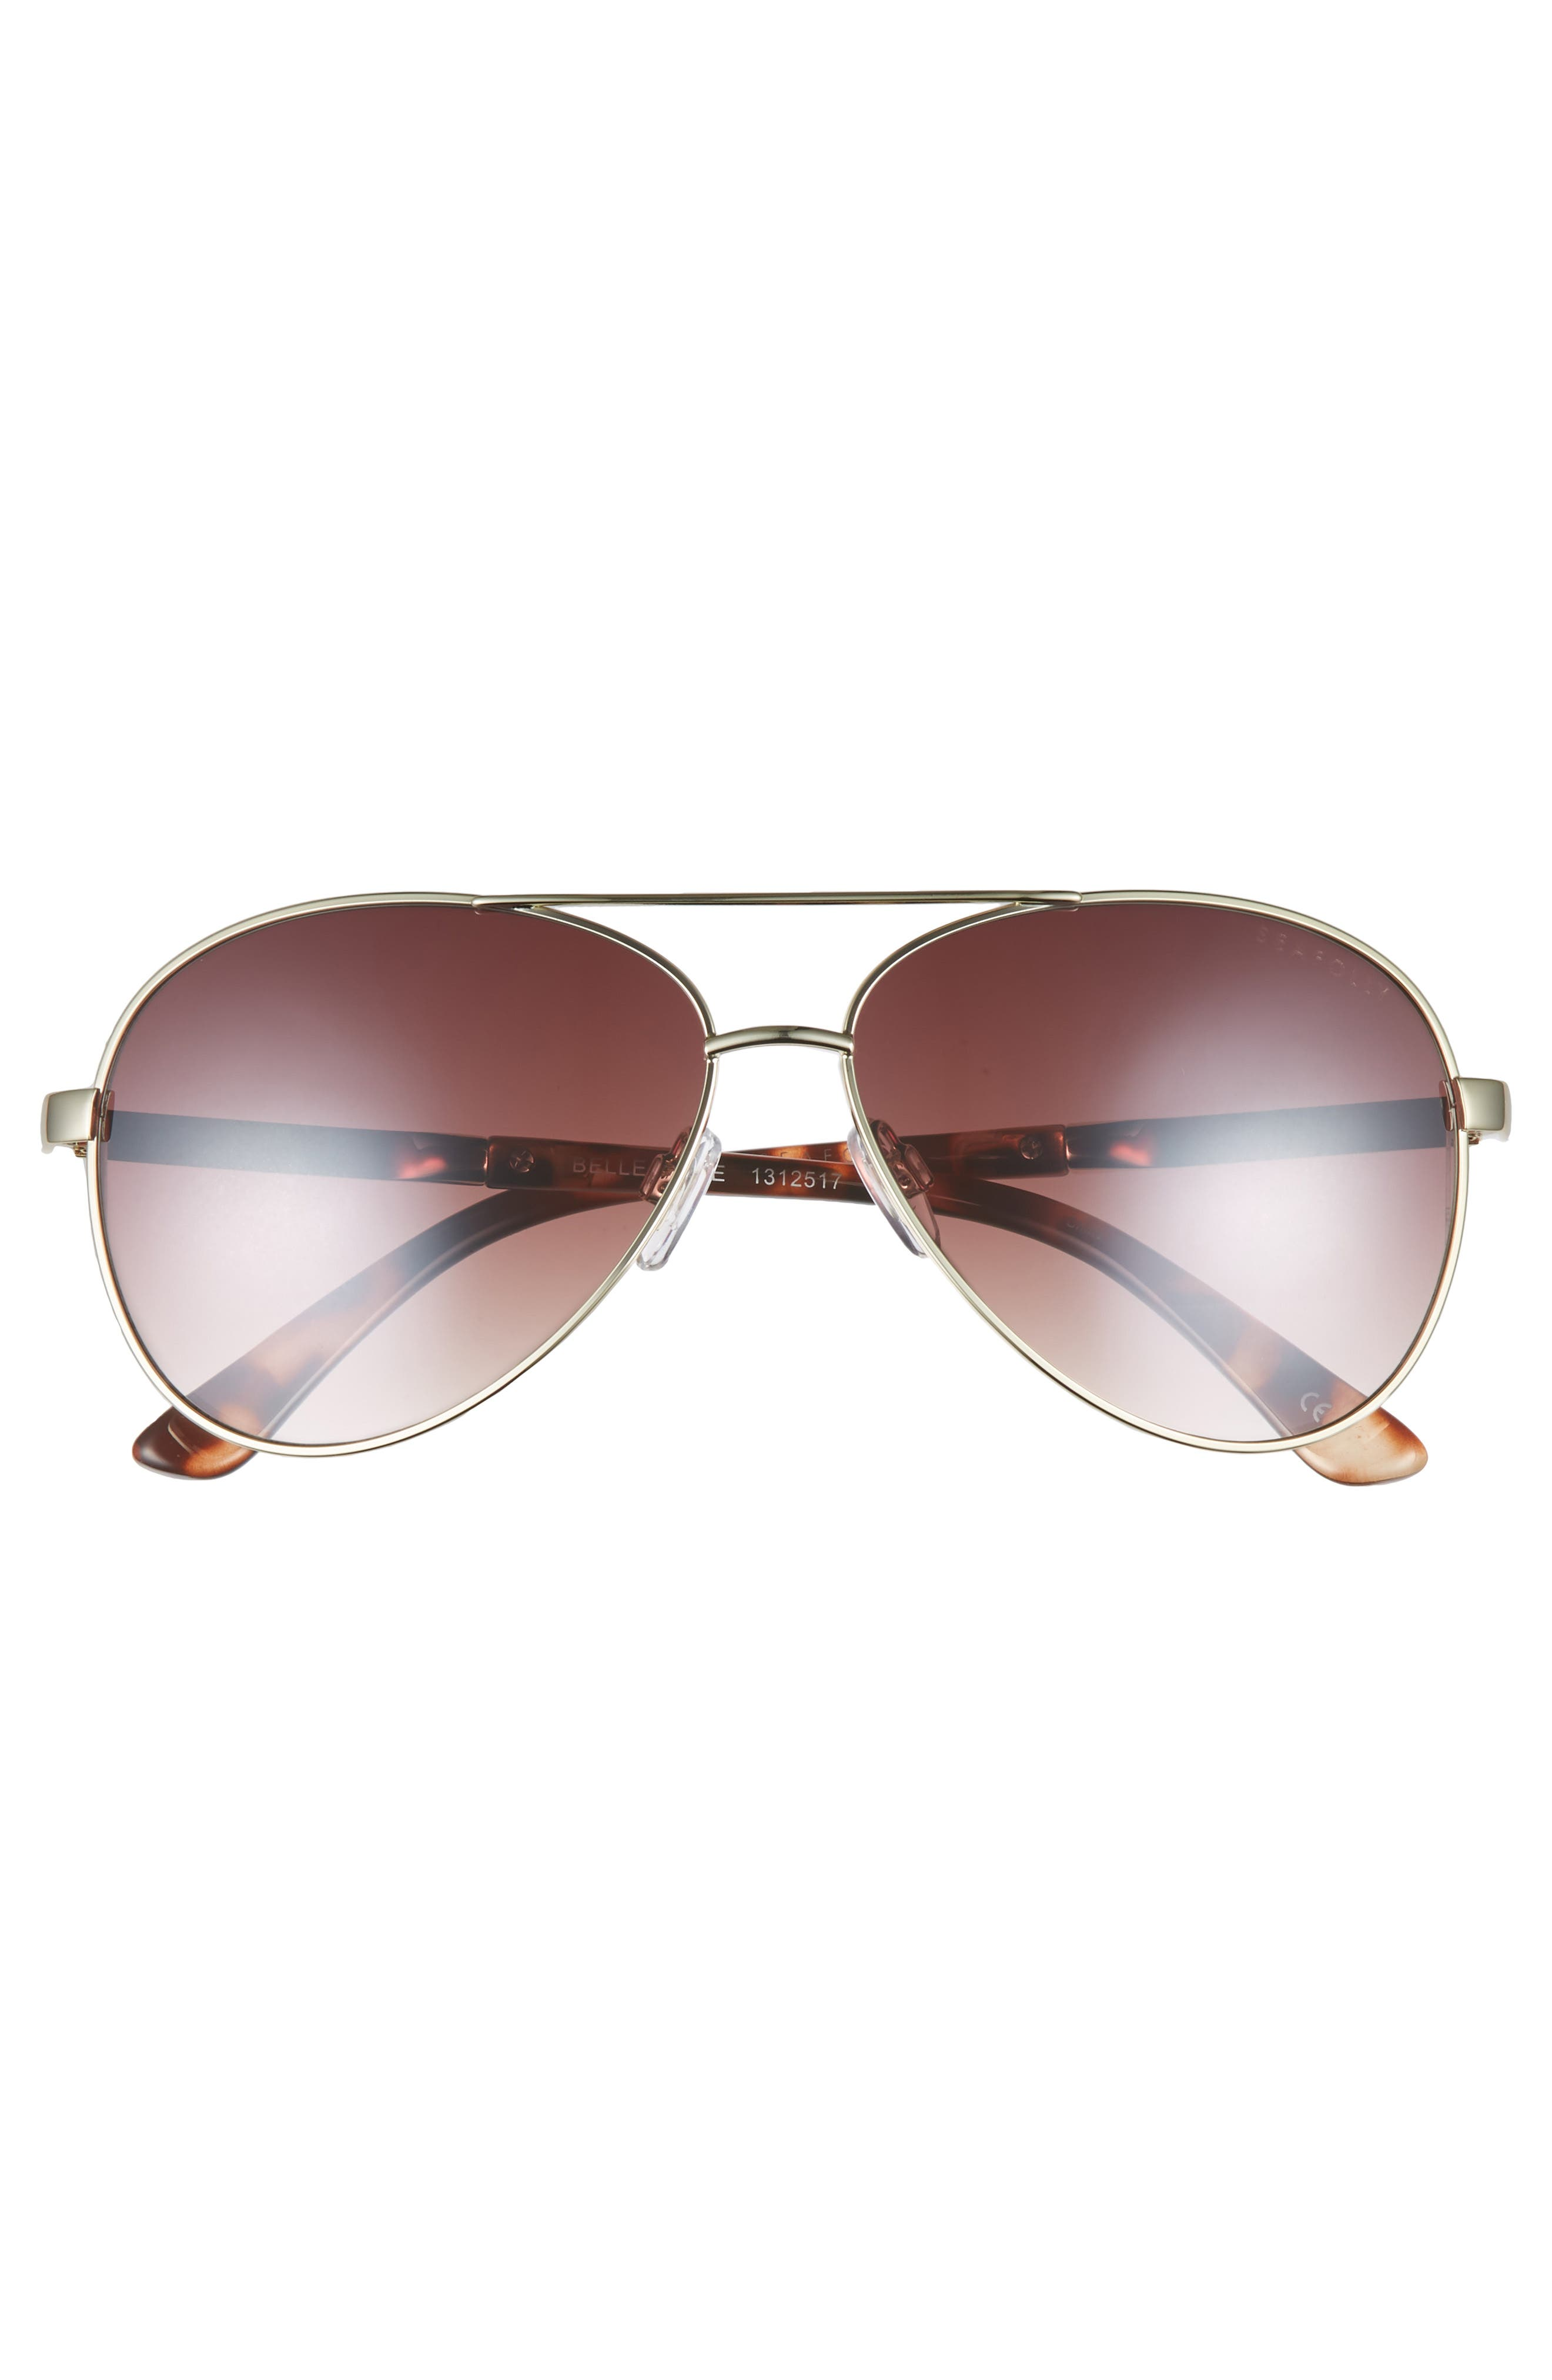 Belle Mare 54mm Aviator Sunglasses,                             Alternate thumbnail 3, color,                             GOLD